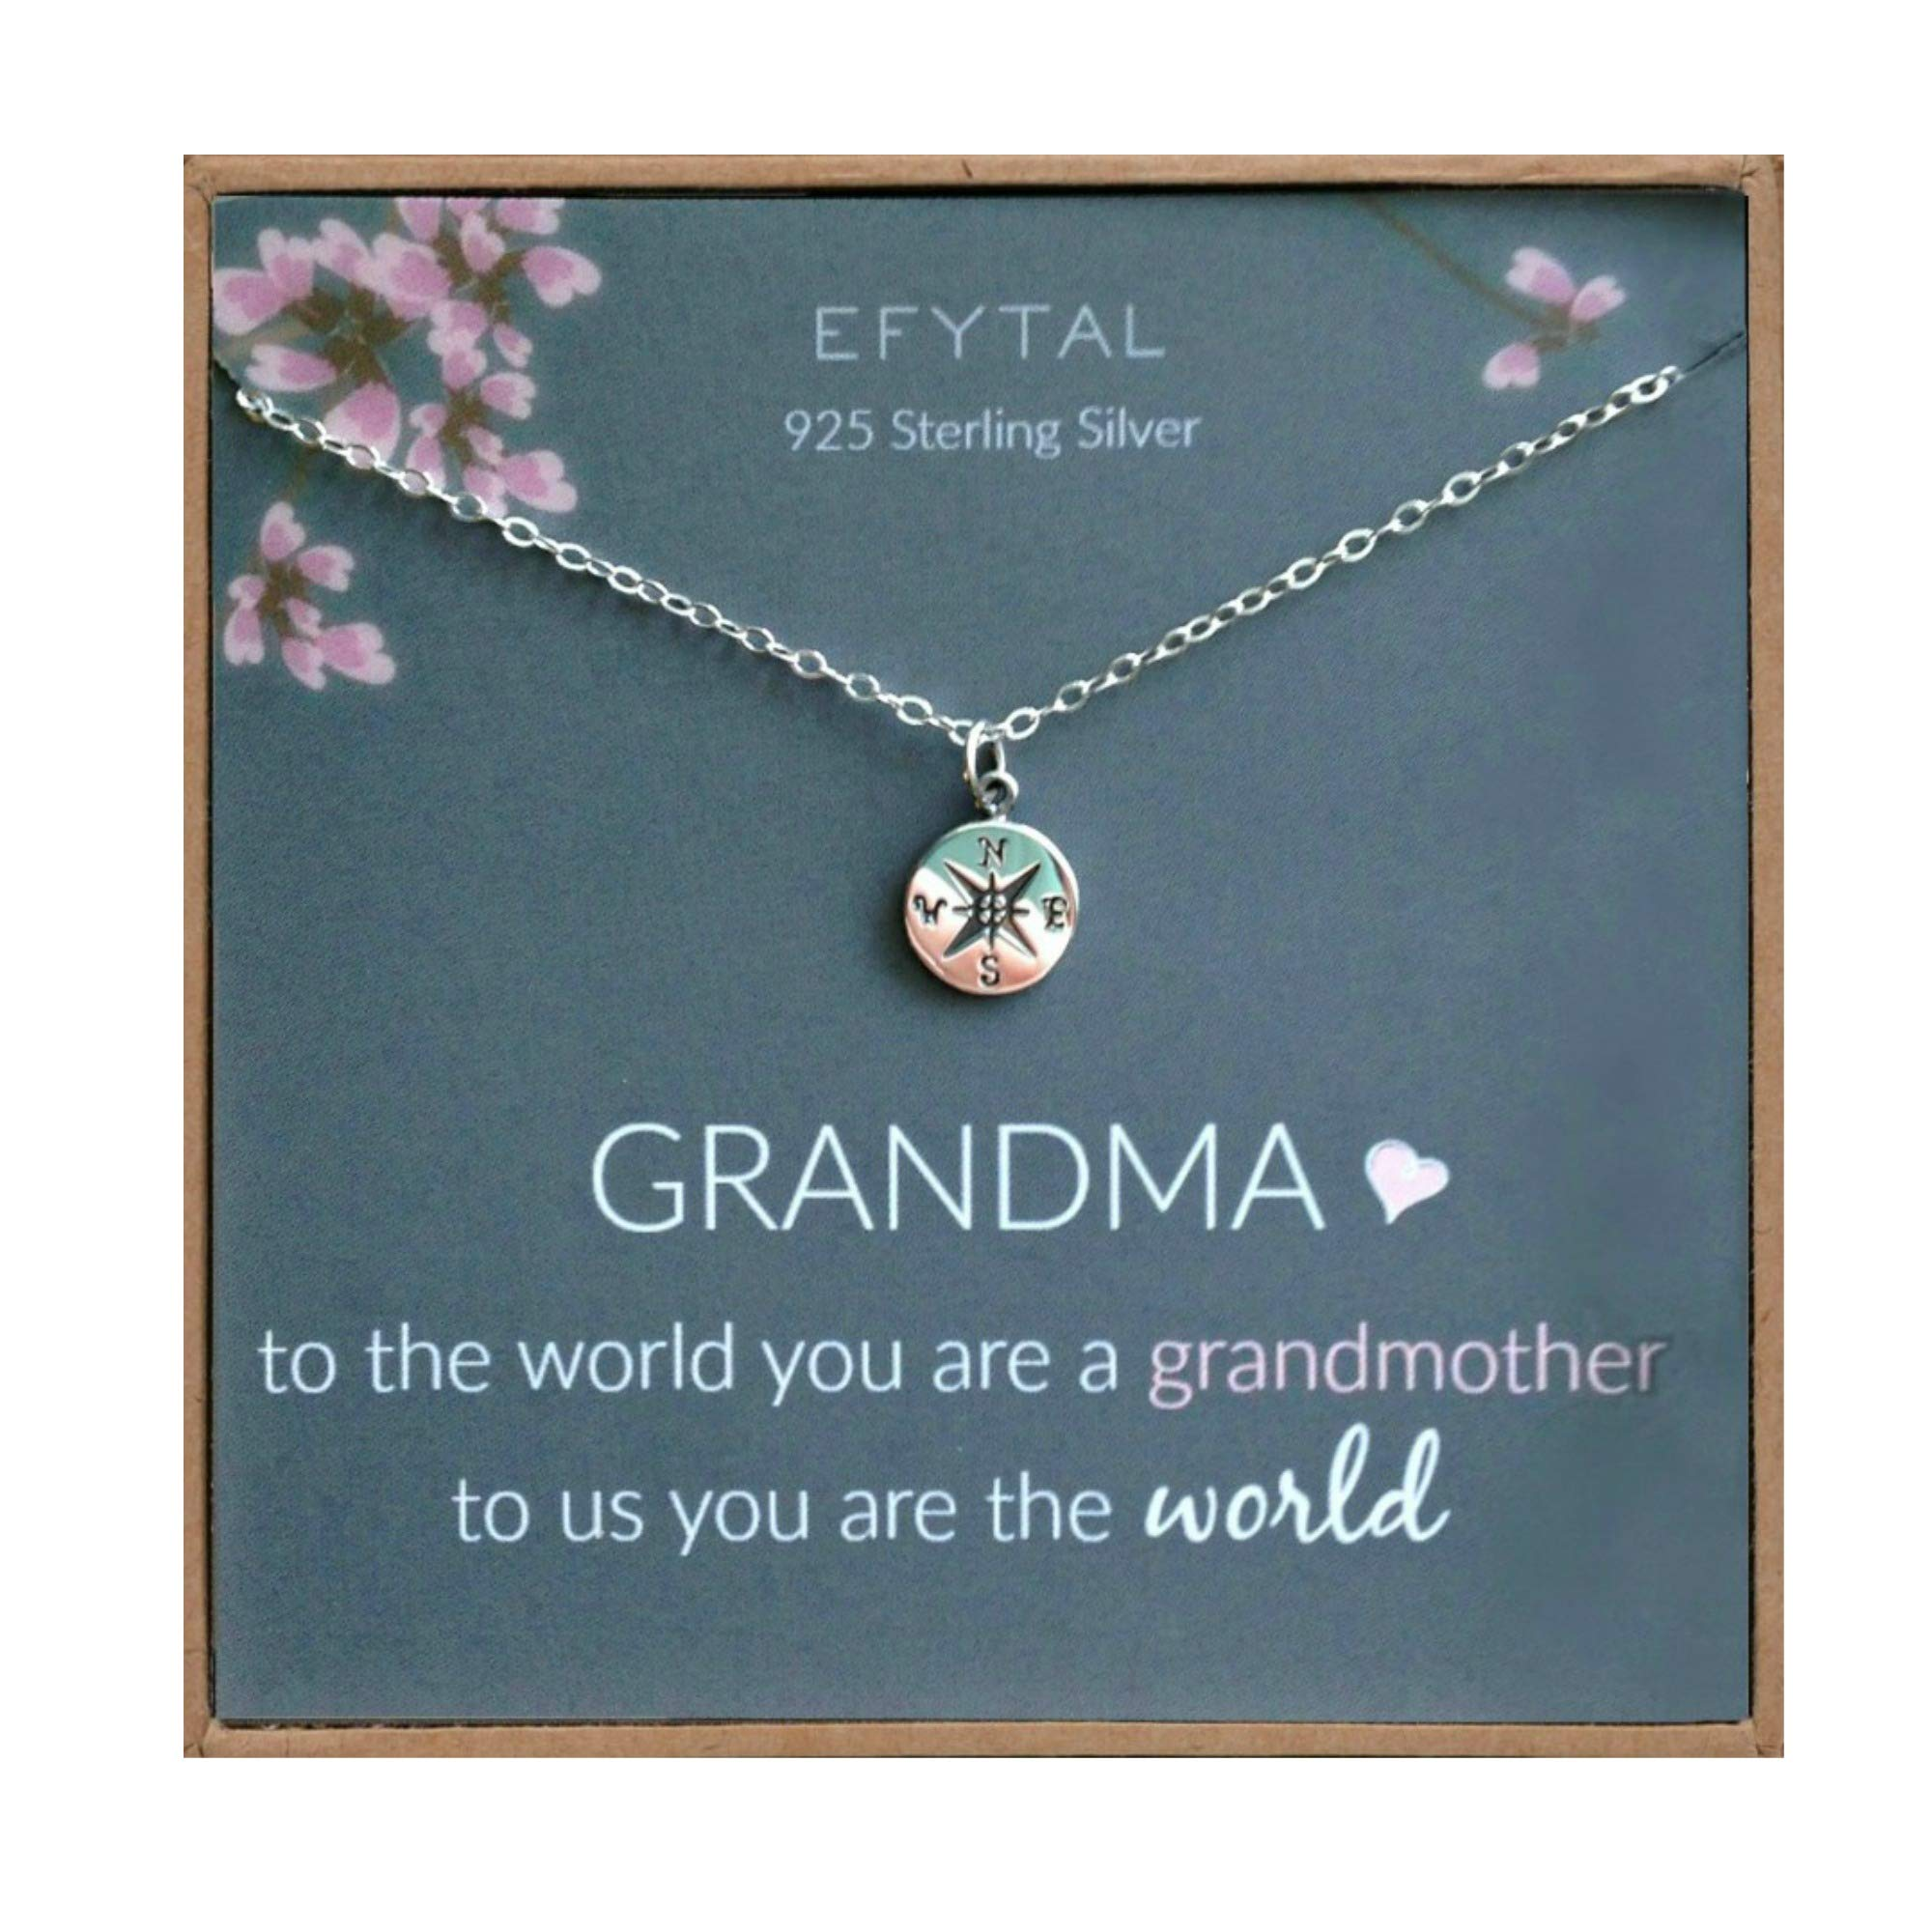 EFYTAL Mothers Day Grandma Gifts, 925 Sterling Silver Compass Necklace for Grandmother, Necklaces for Women, Best Birthday Gift Ideas, Pendant Jewelry For Her